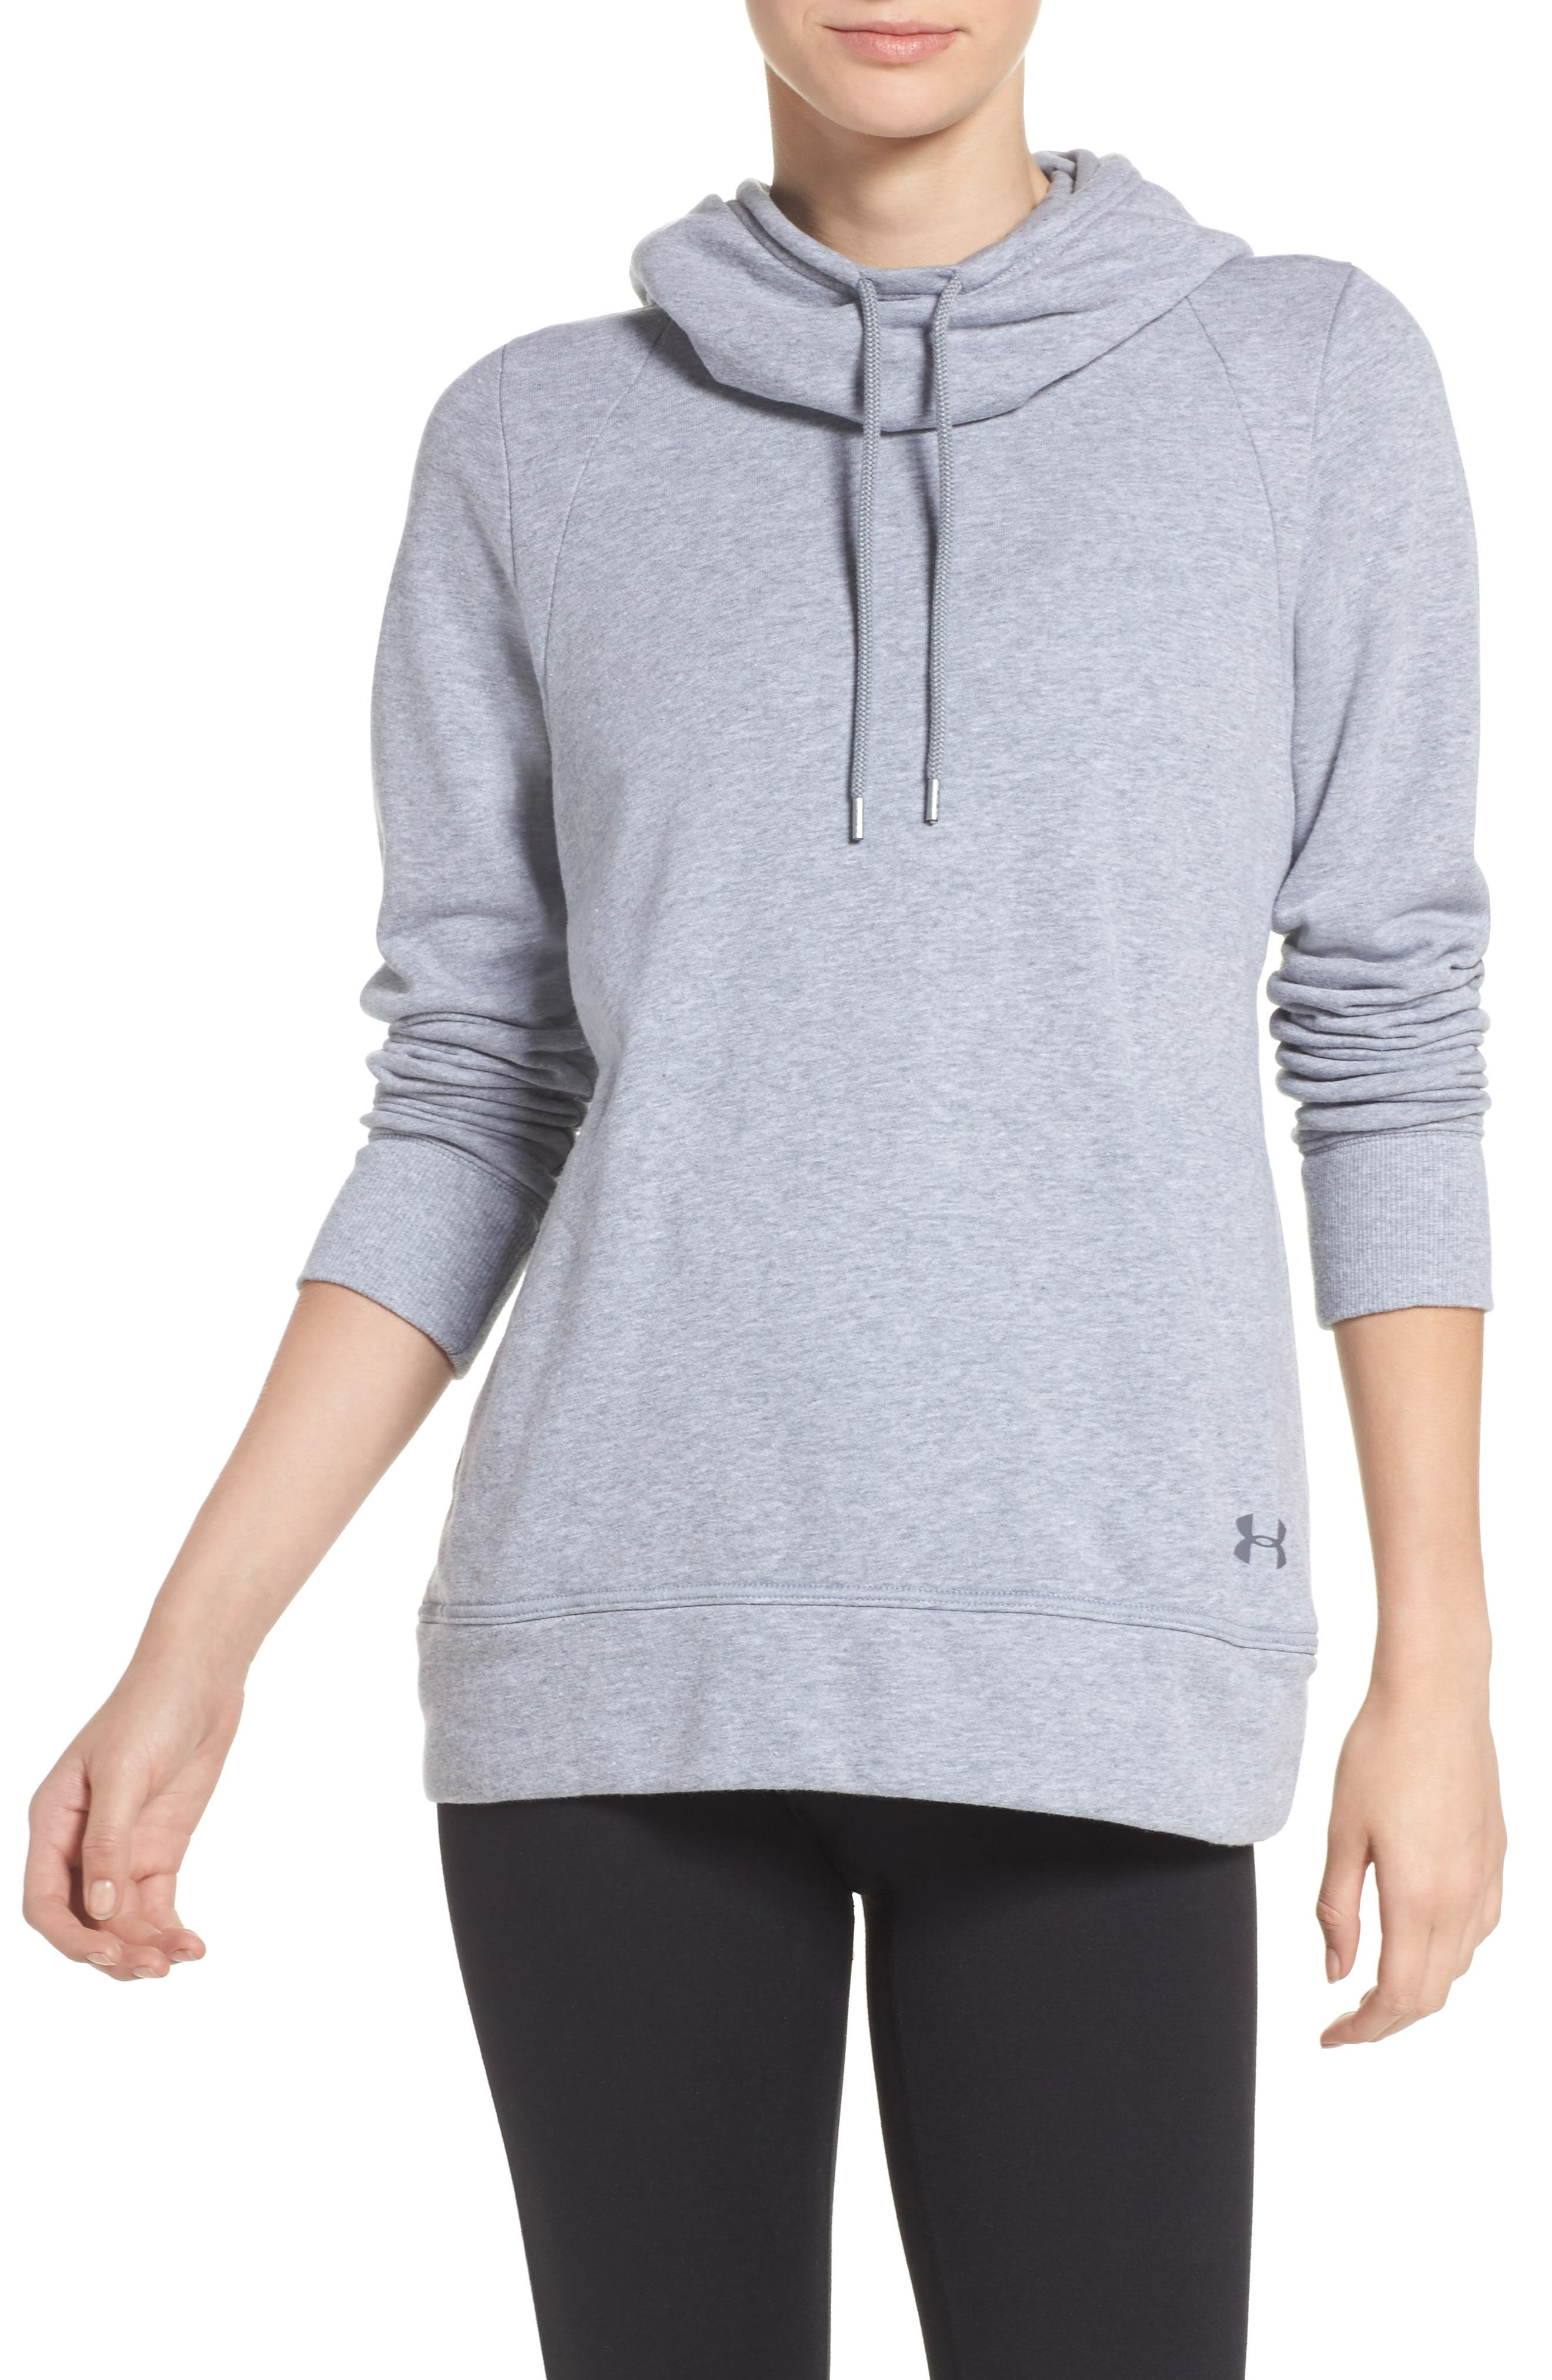 Cutout Back Hoodie,                         Main,                         color, True Gray Heather/ Rhino Grey